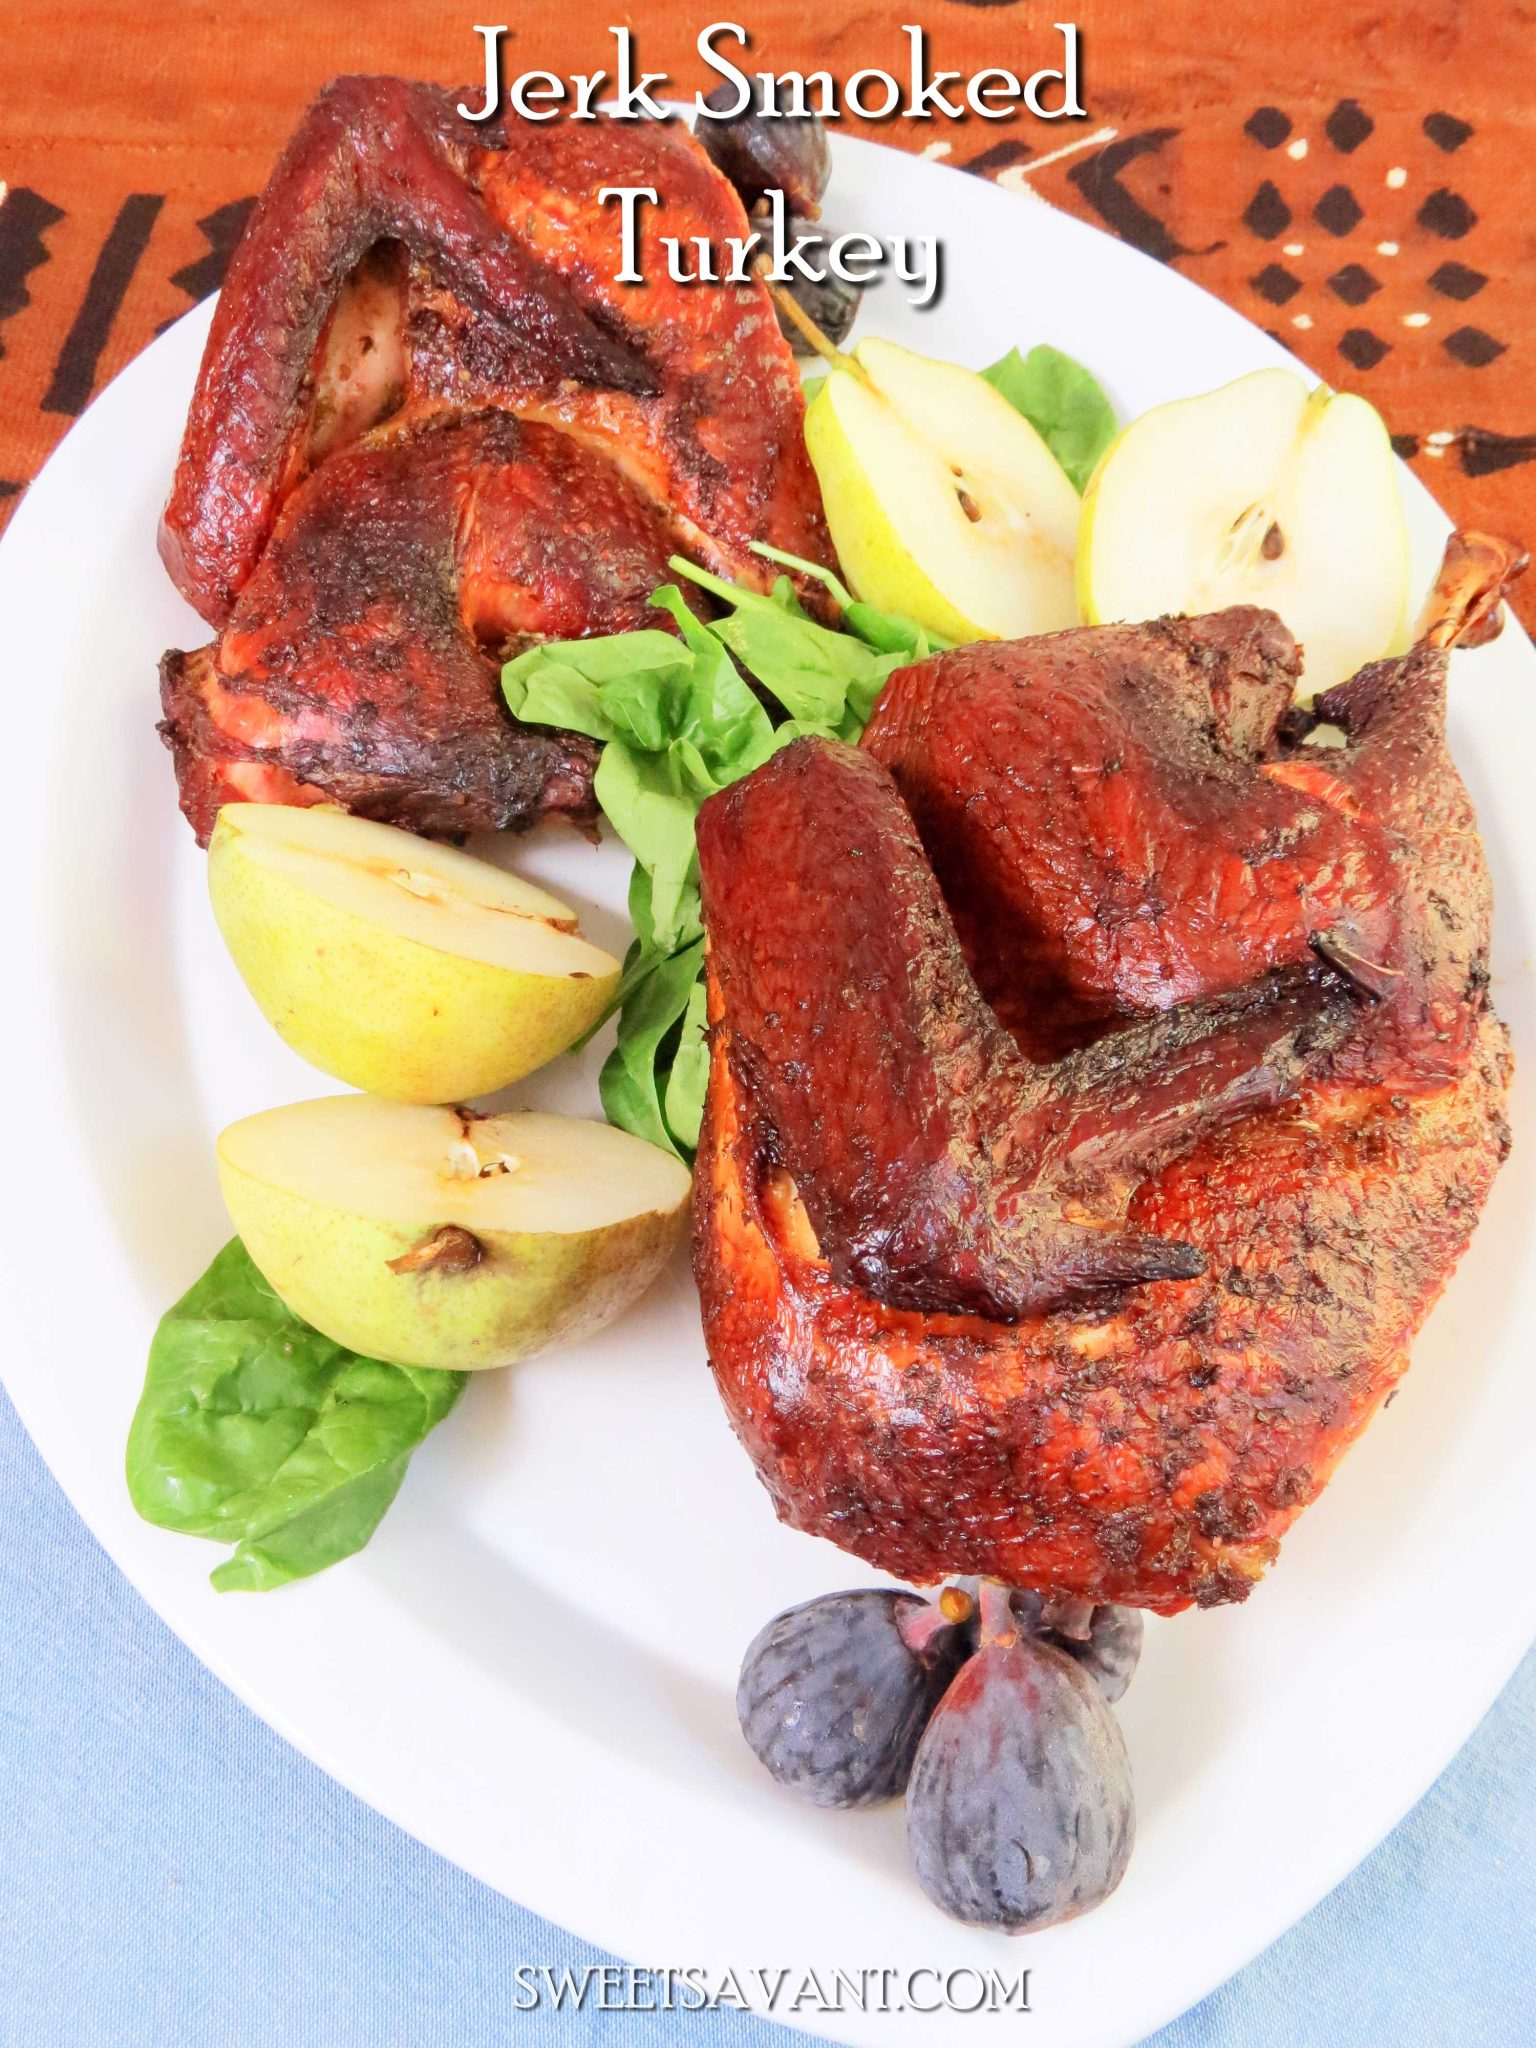 Rub your turkey with some homemade Jamaican style jerk marinade, fire up the grill and celebrate the holiday with a little Island style. Jerk smoked turkey gets some heat from Scotch bonnet peppers, a VERY hot pepper with fruity flavor. Scotch bonnet peppers are quite a bit hotter than jalapeños add them with care if you want to keep your taste buds intact.